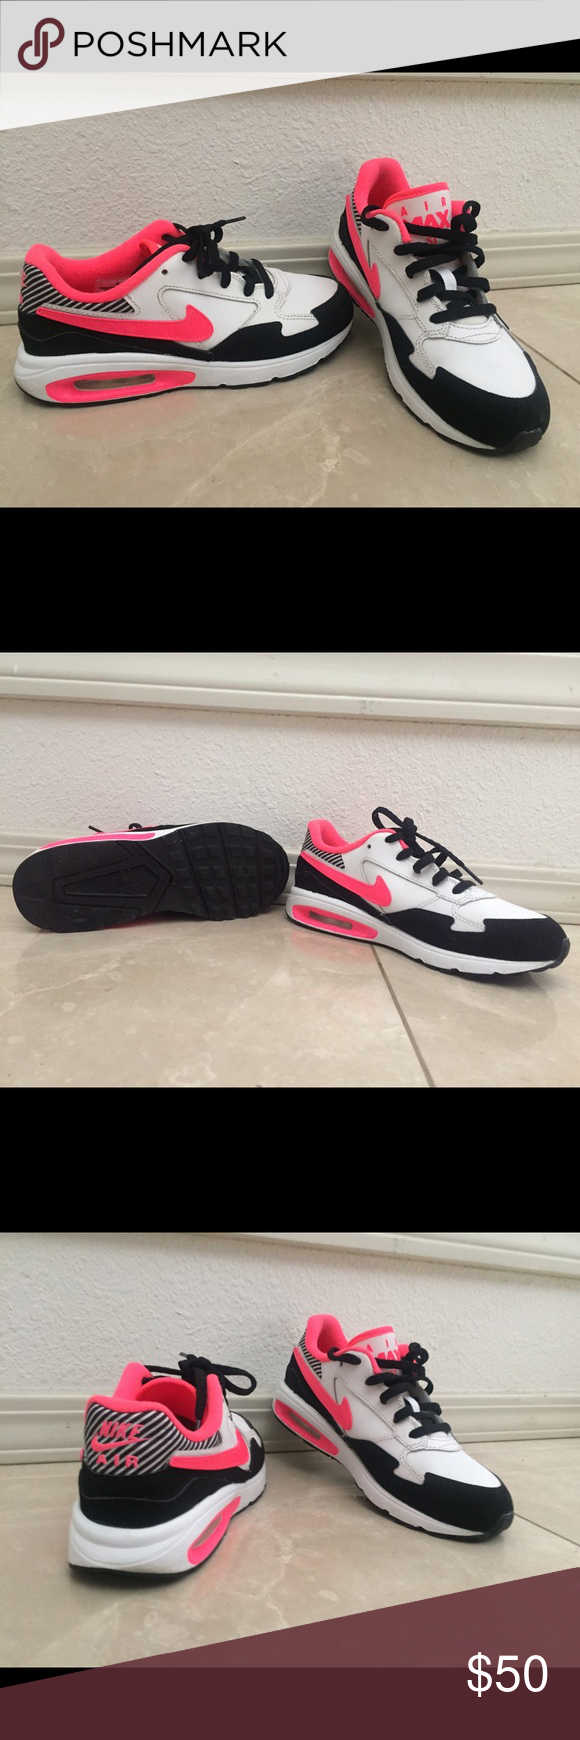 Nikes Sneakers ( youth) Black and white Nikes great condition like new worn 3 times. Nike Shoes Sneakers